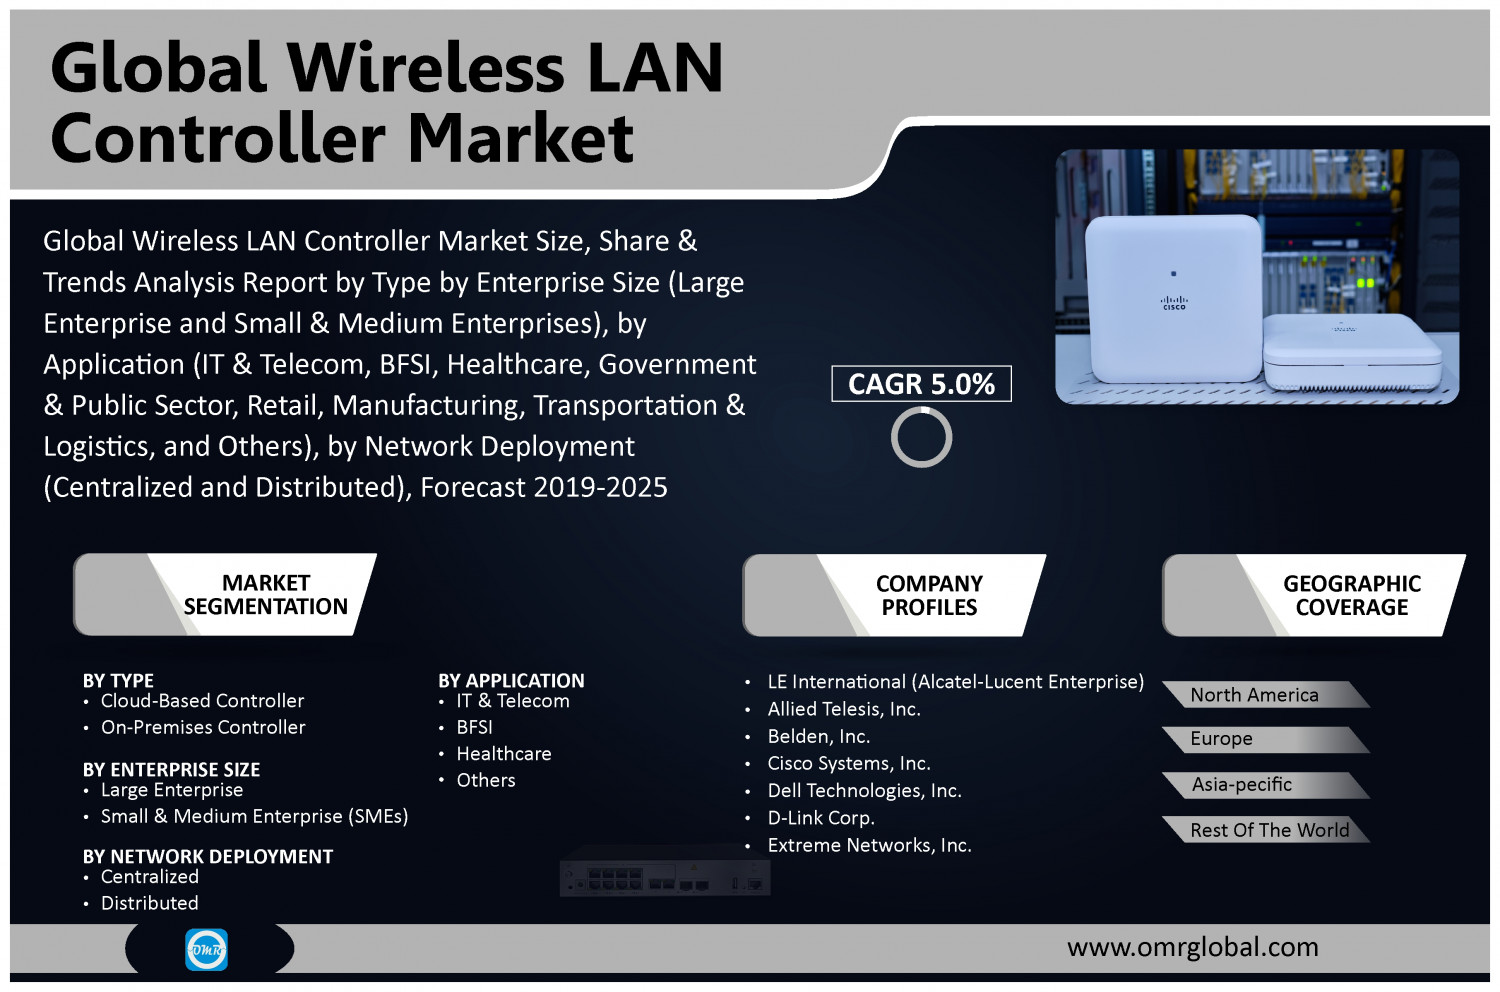 Wireless LAN Controller Market Analysis, Trends, Growth, Size, Share and Forecast 2019 to 2025Wireless LAN Controller Market Analysis, Trends, Growth, Size, Share and Forecast 2019 to 2025 Infographic